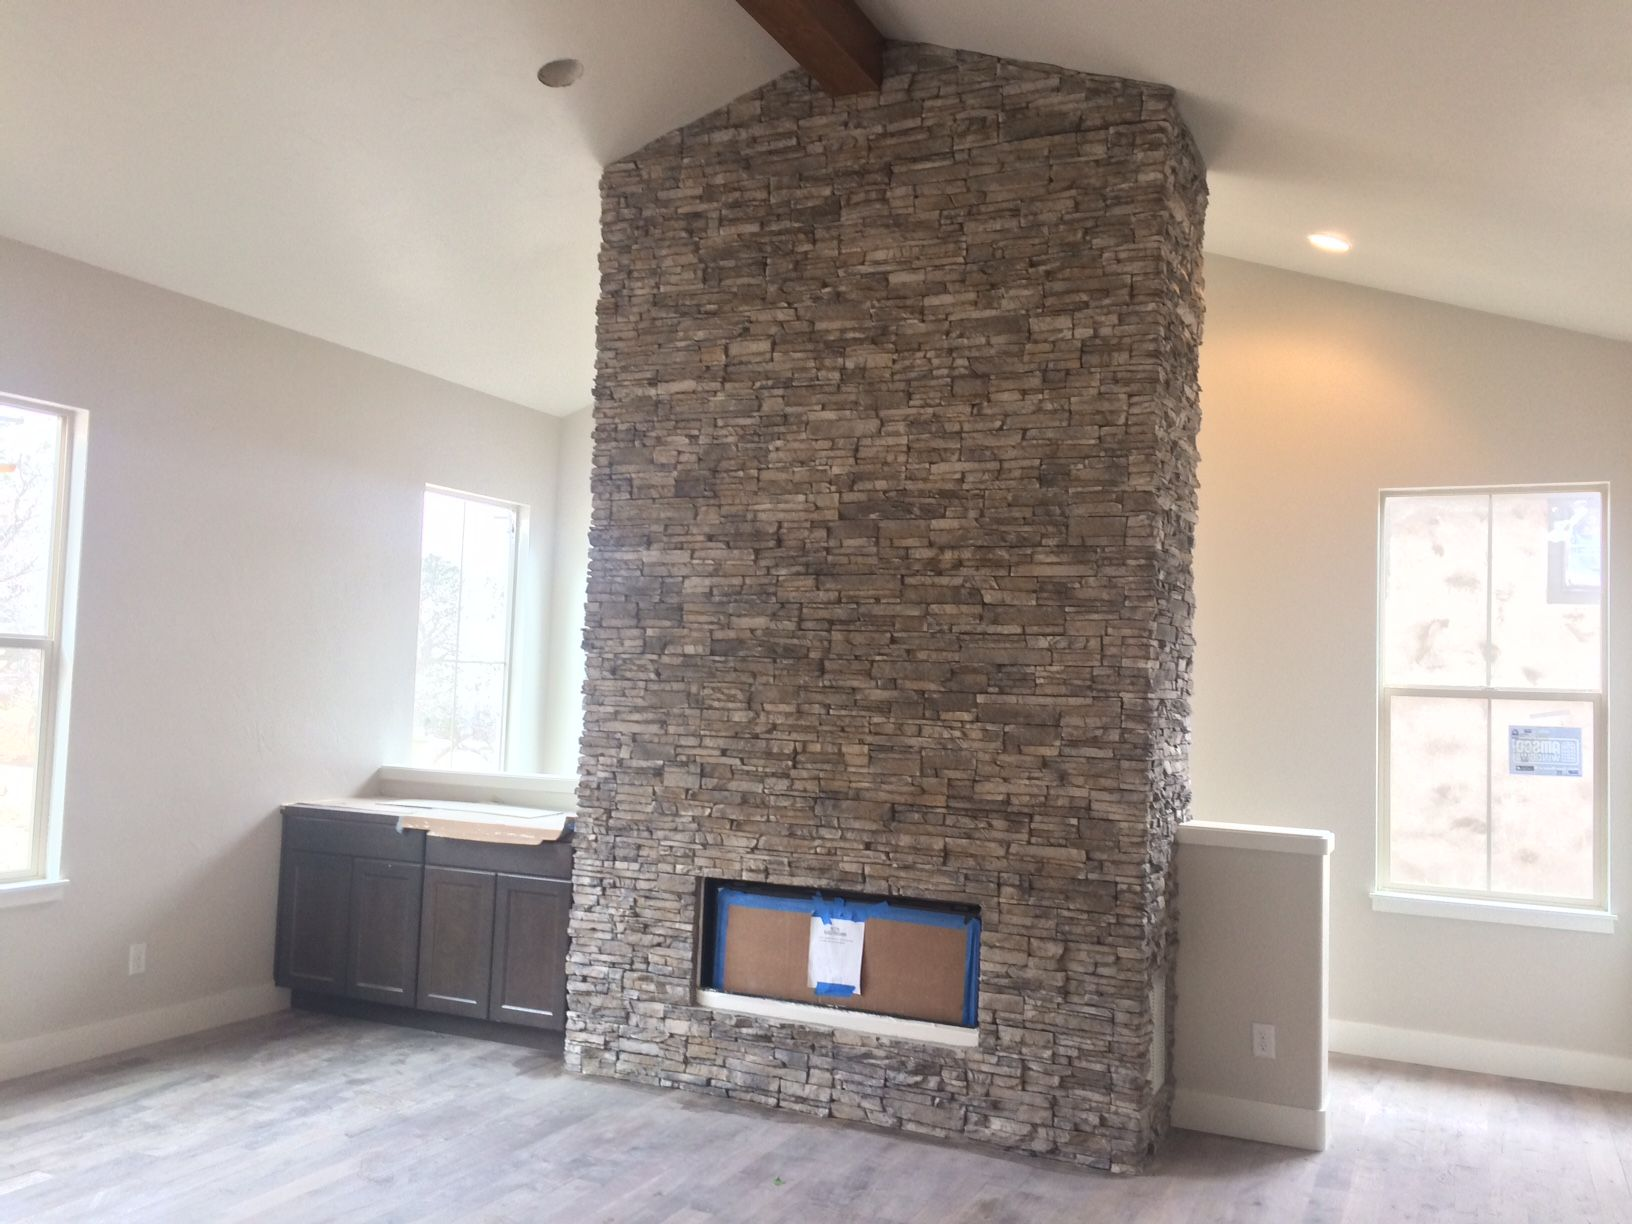 Great Room Cosmos Gas Fireplace With El Dorado Nantucket Stacked Stone To  Ceiling. Built